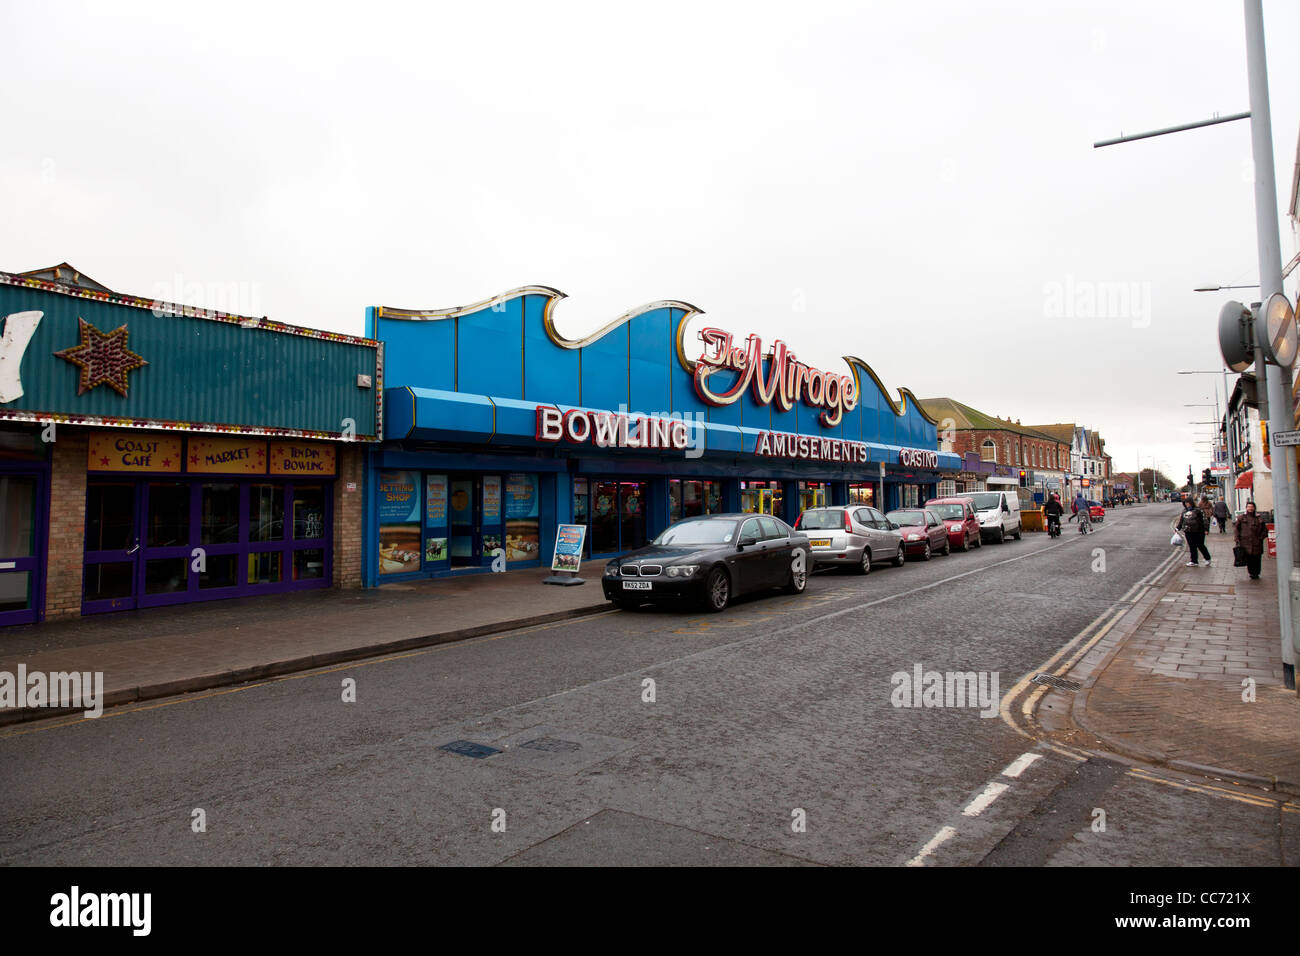 East coast, Mablethorpe, Lincolnshire amusements arcades on High Street promenade shoppers and tourists - Stock Image